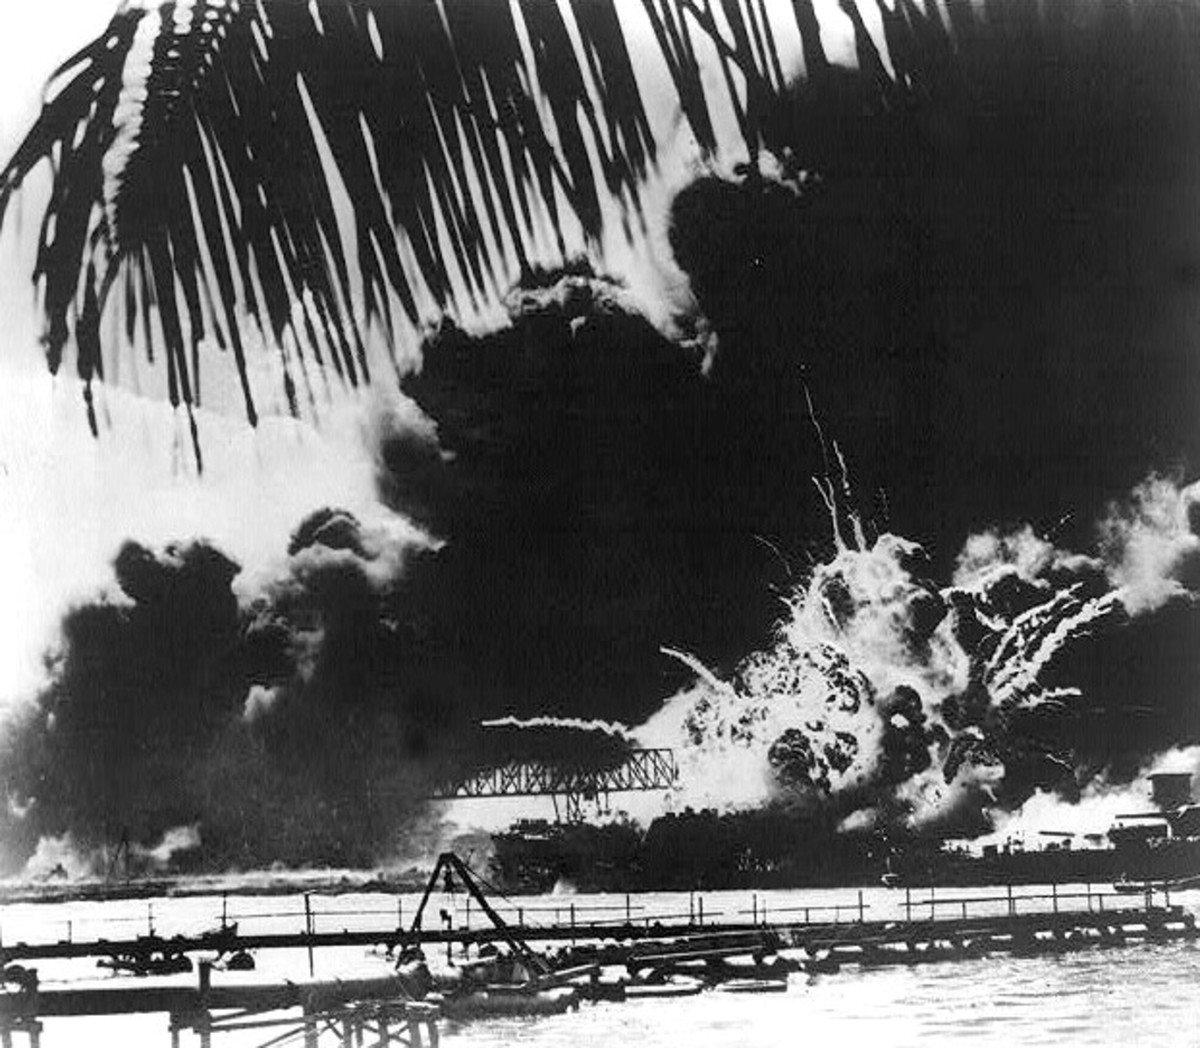 Pearl Harbor naval base aflame after the Japanese attack, 1941. Prints and Photographs Division, Library of Congress. Reproduction Number LC-USZ62-16555.